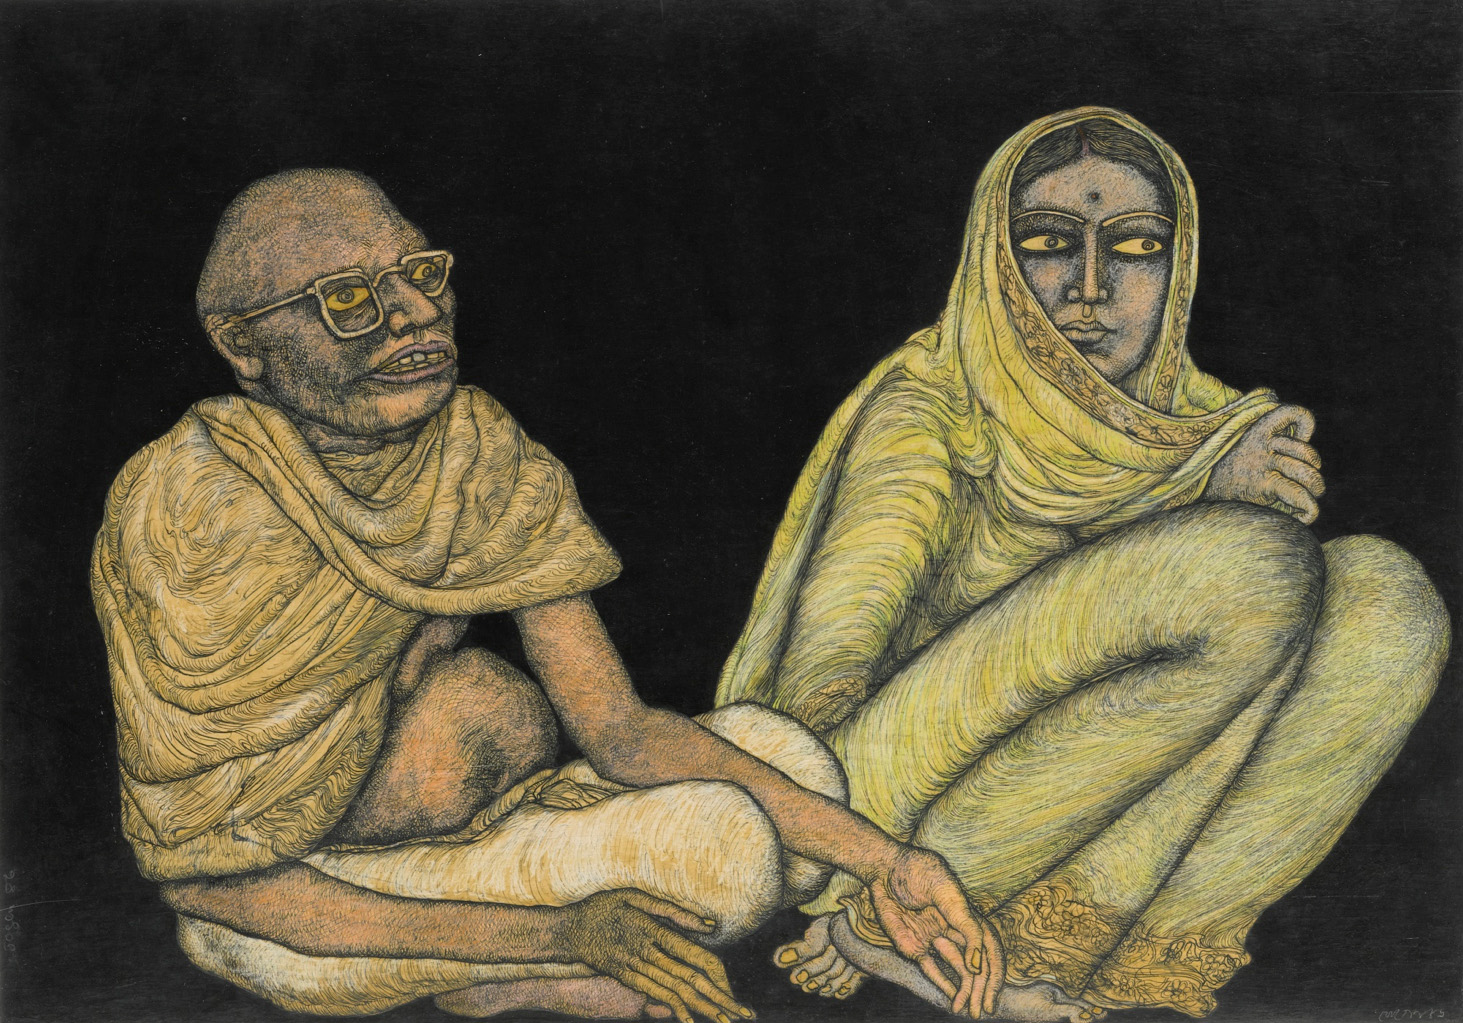 Jogen Chowdhury, Untitled (Couple No. 1, Man and Woman)